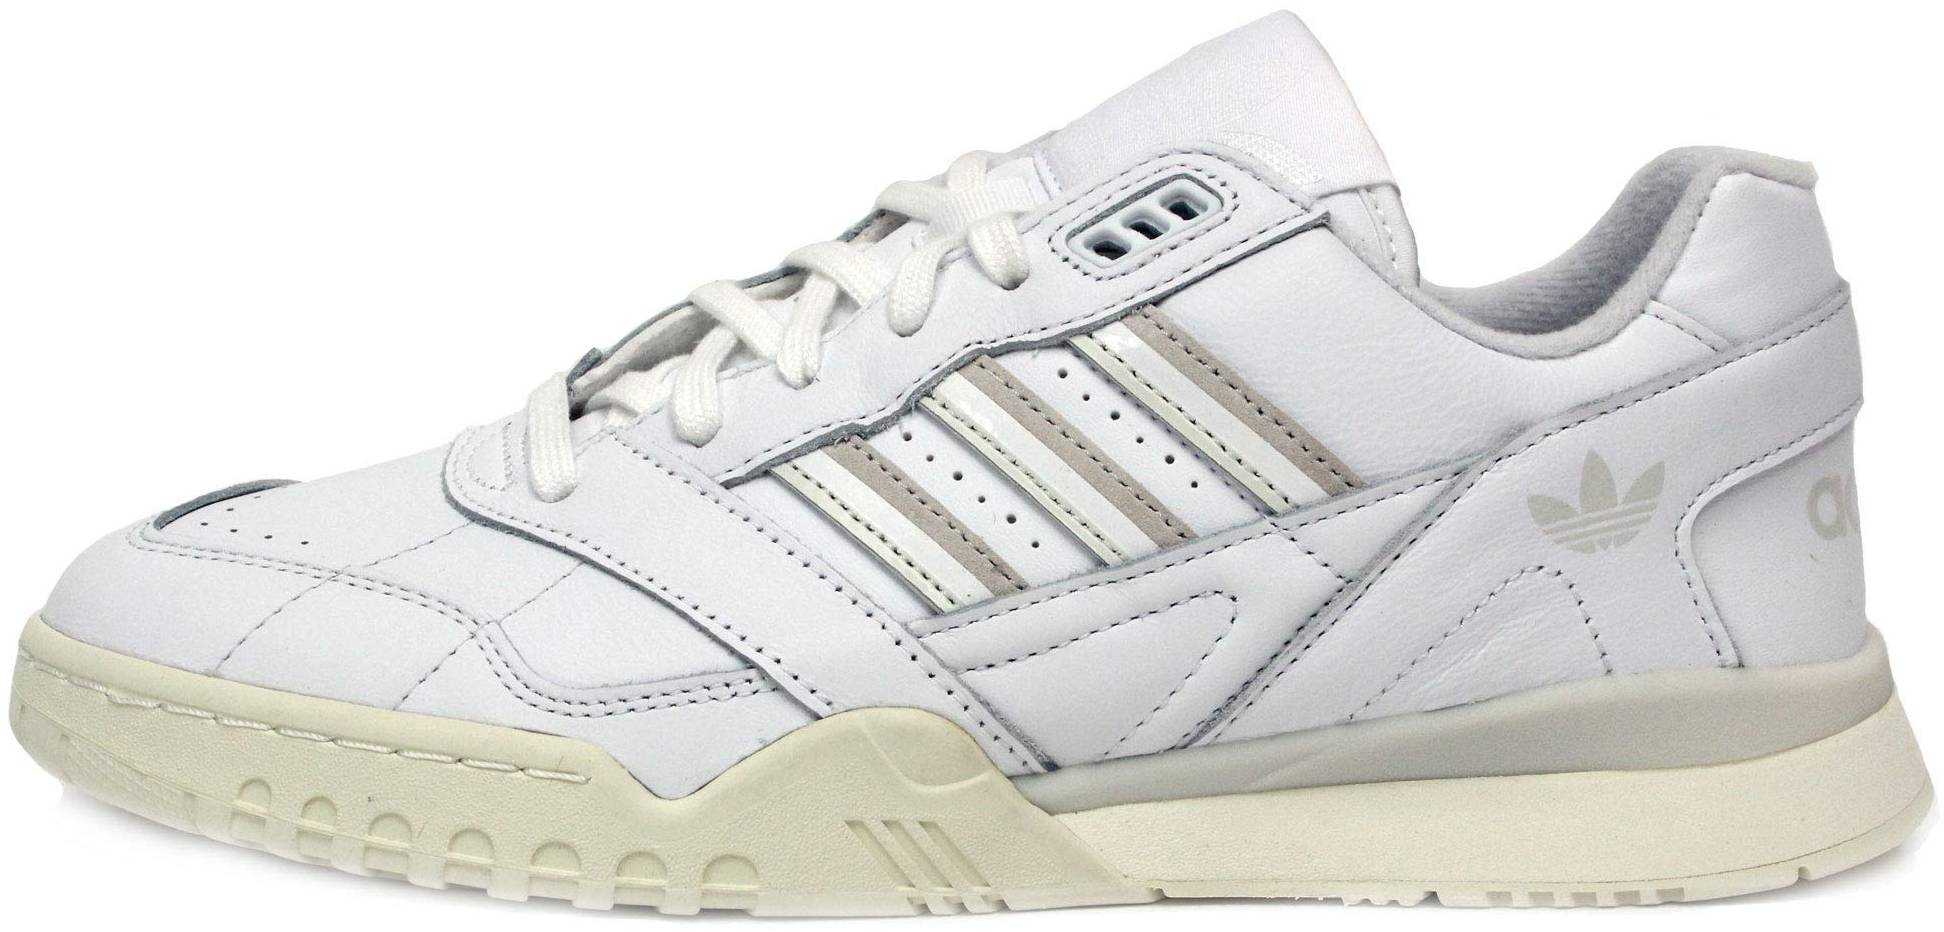 Adidas A.R Trainer sneakers in 5 colors (only £25) | RunRepeat